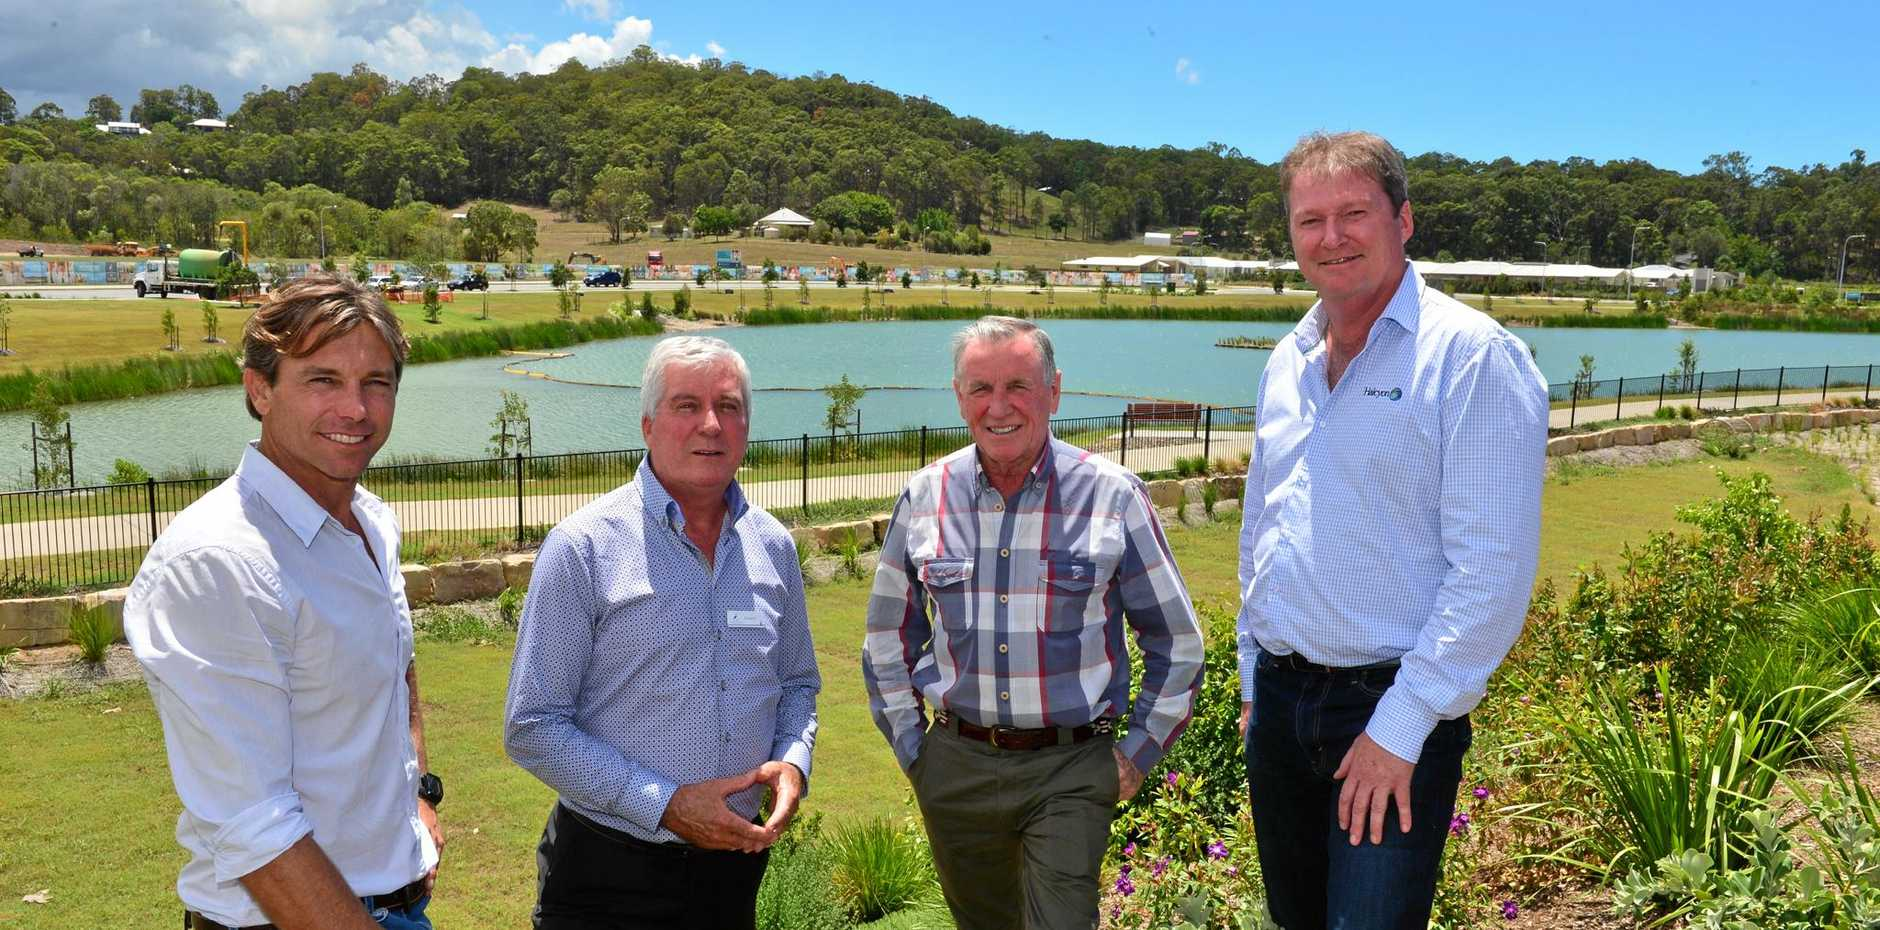 Massive RV park looming for booming Coast suburb | Sunshine Coast Daily